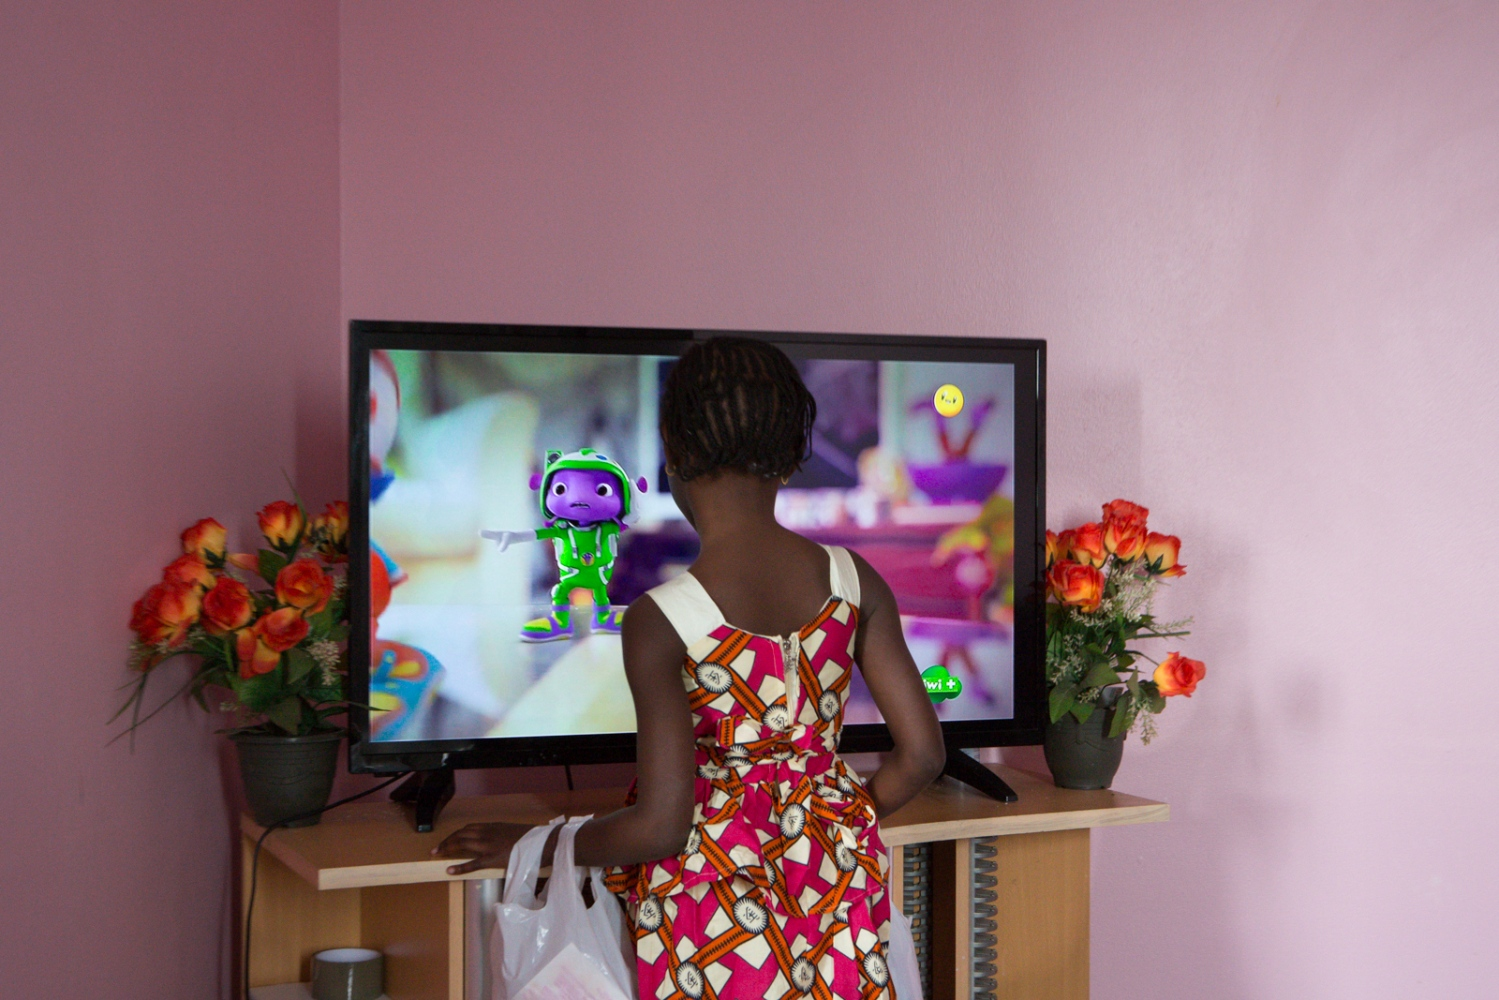 Manchyta watching a cartoon on television. Saint Denis, Ile de France, France